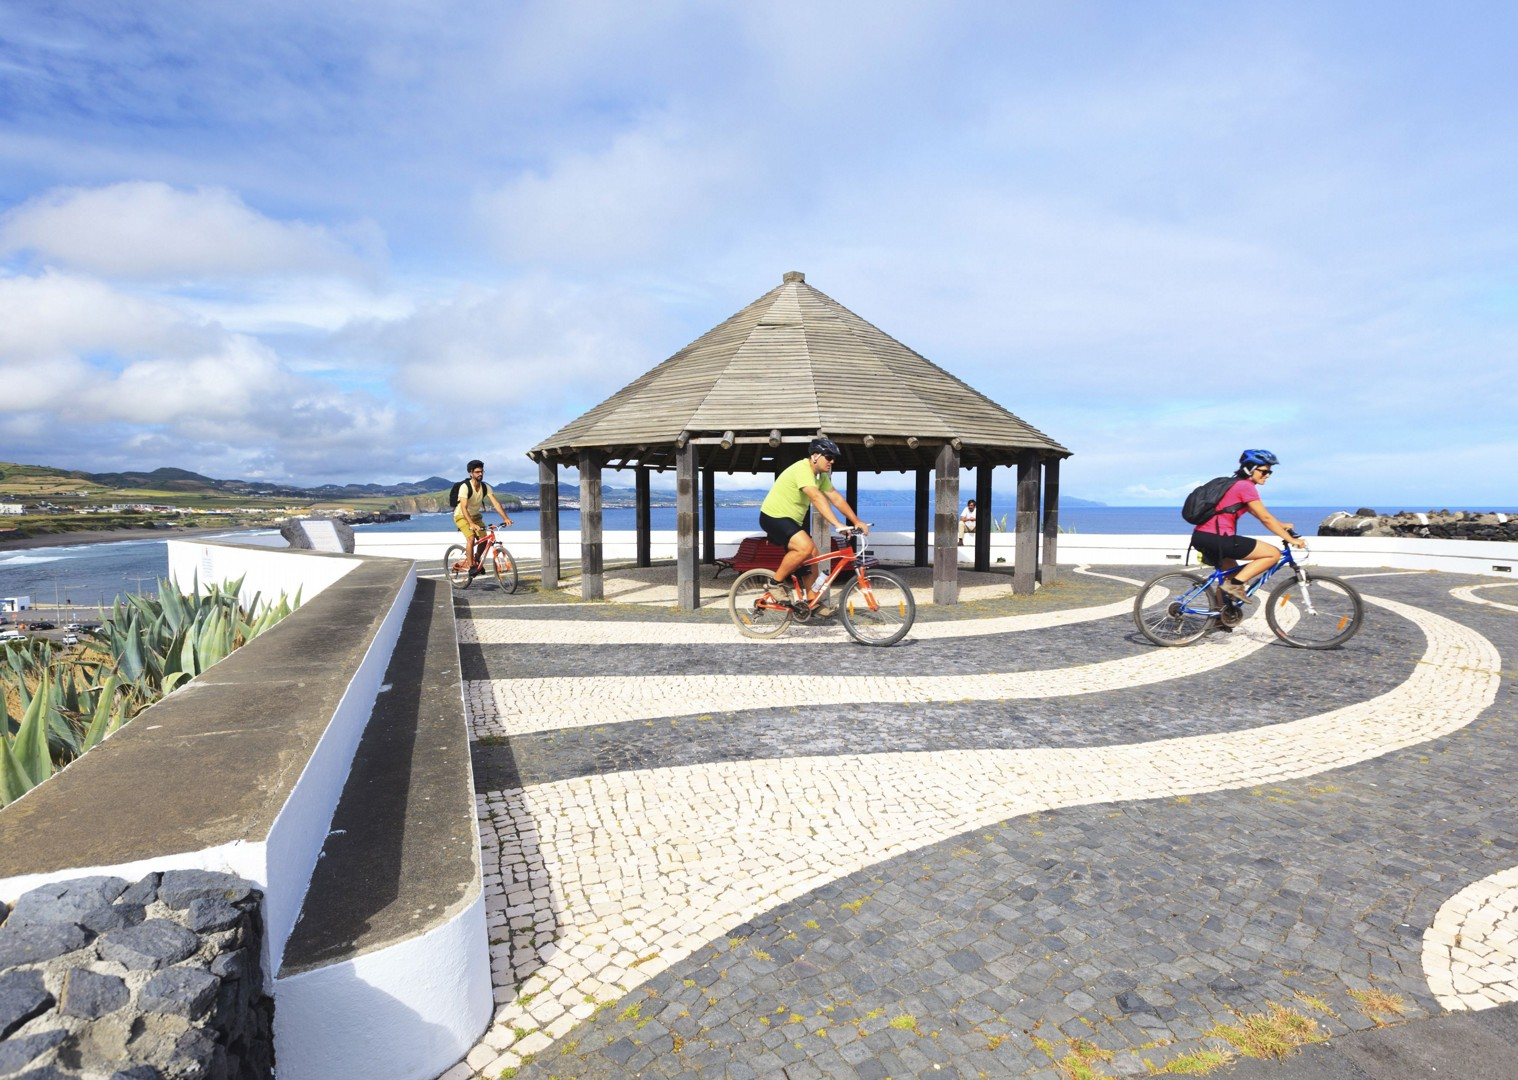 azores-culture-coastal-route-azores-adventures-family-cycling-holiday.jpg - The Azores - Island Discoverer - Family Cycling